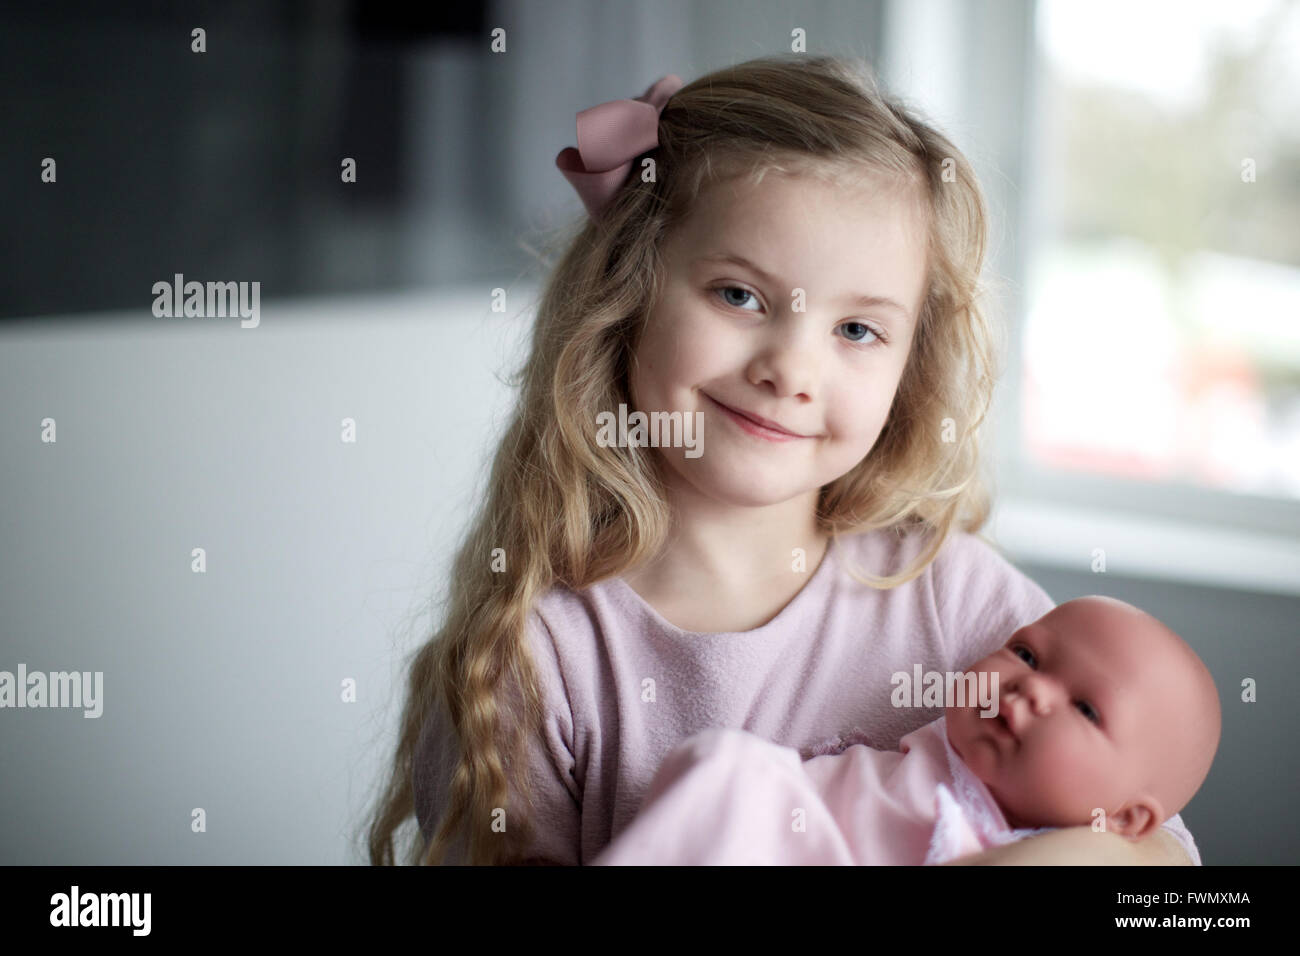 portrait of girl with baby doll wrapped in towel. kid, happiness, toy, childcare. - Stock Image